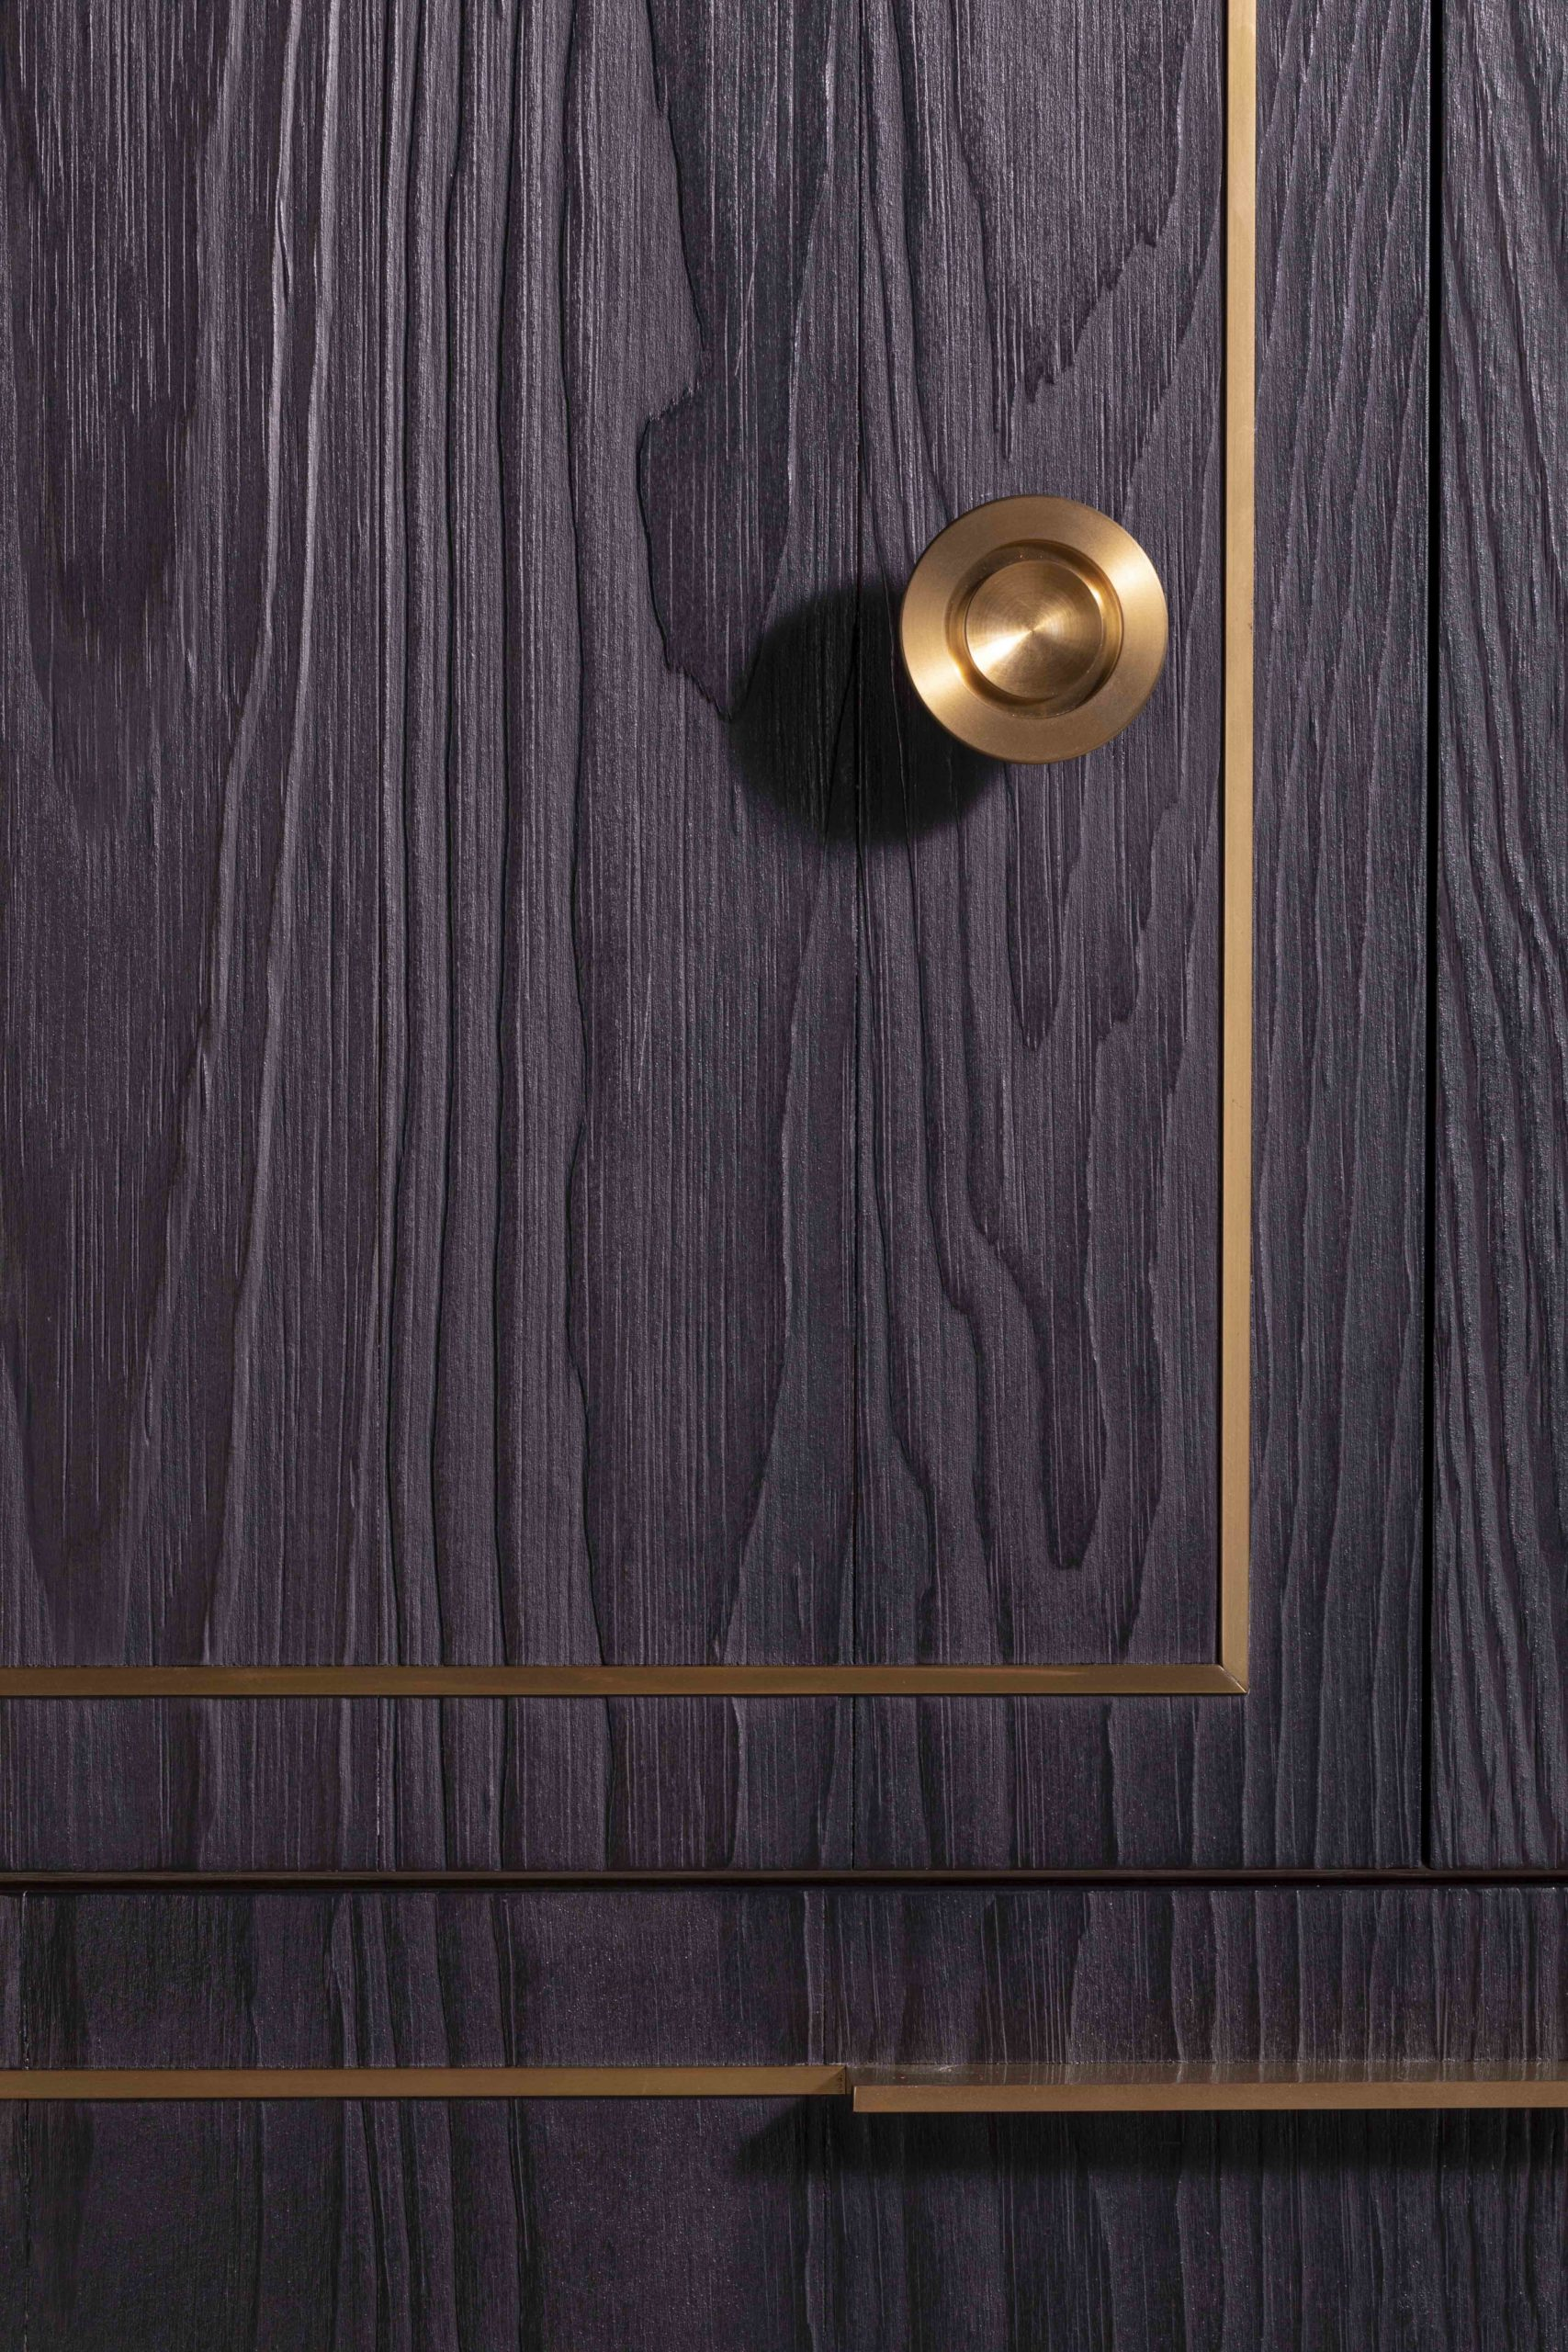 amuneal_products_WNWN_NYDC_3NYC-2019-Brass-Kitchen-Charred-pine-pantry-door-detail-6-nycsshowroom_nov19_0099-scaled-1